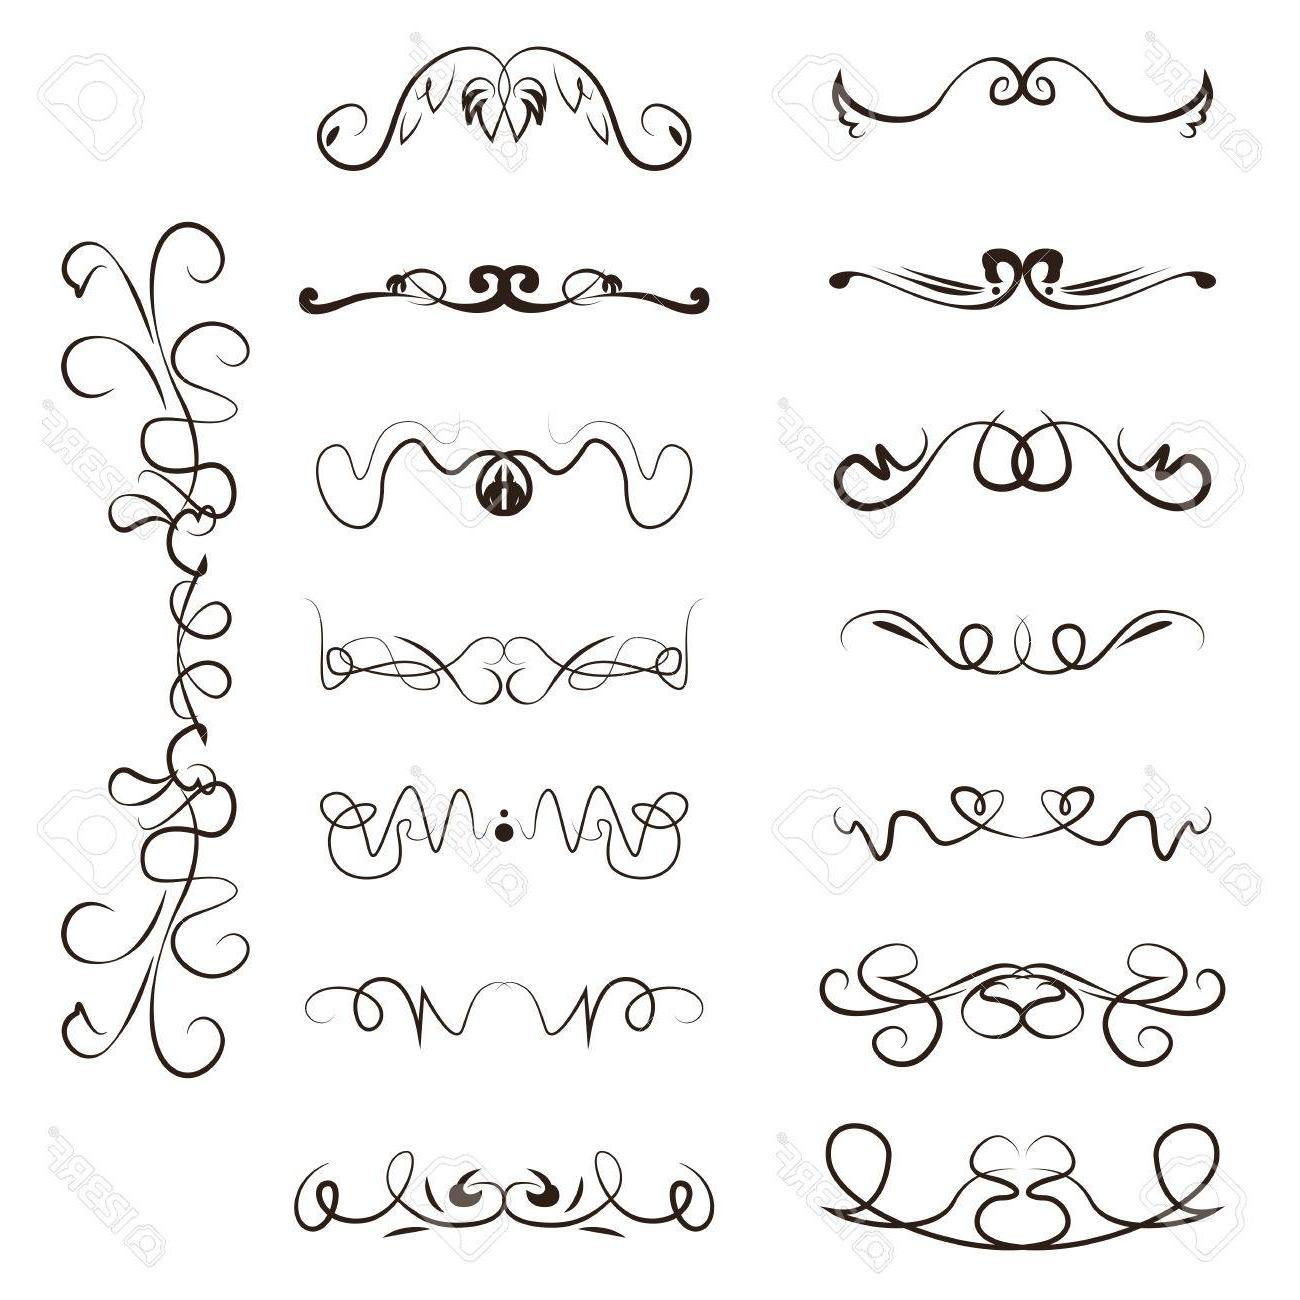 1300x1300 Best Hd Calligraphy Swirl Line Graphic Designs Vector Set Border